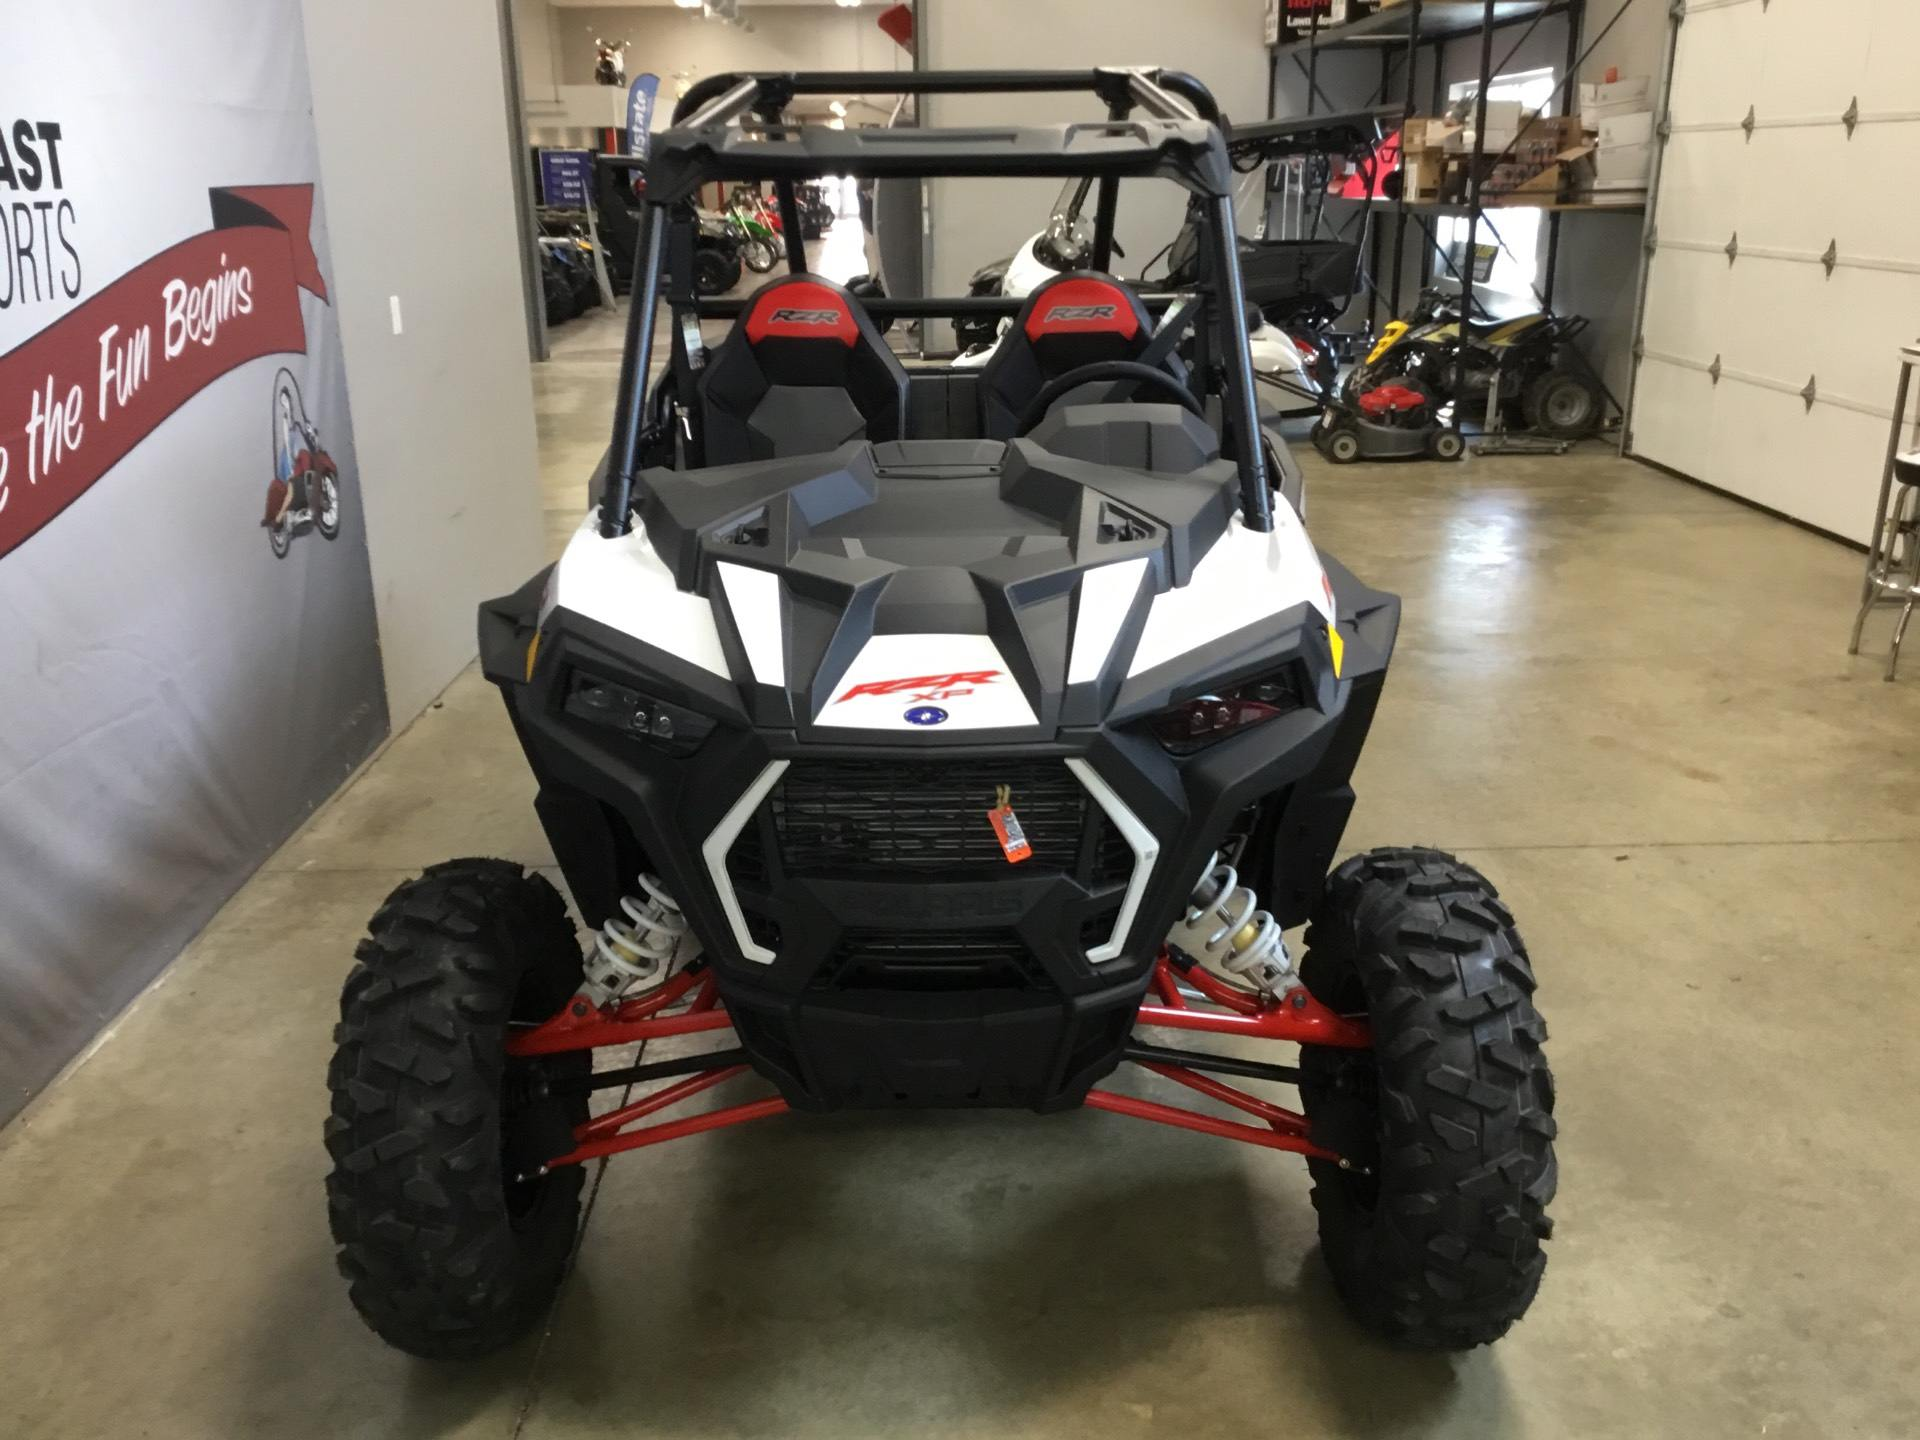 2020 Polaris RZR XP 1000 in O Fallon, Illinois - Photo 3